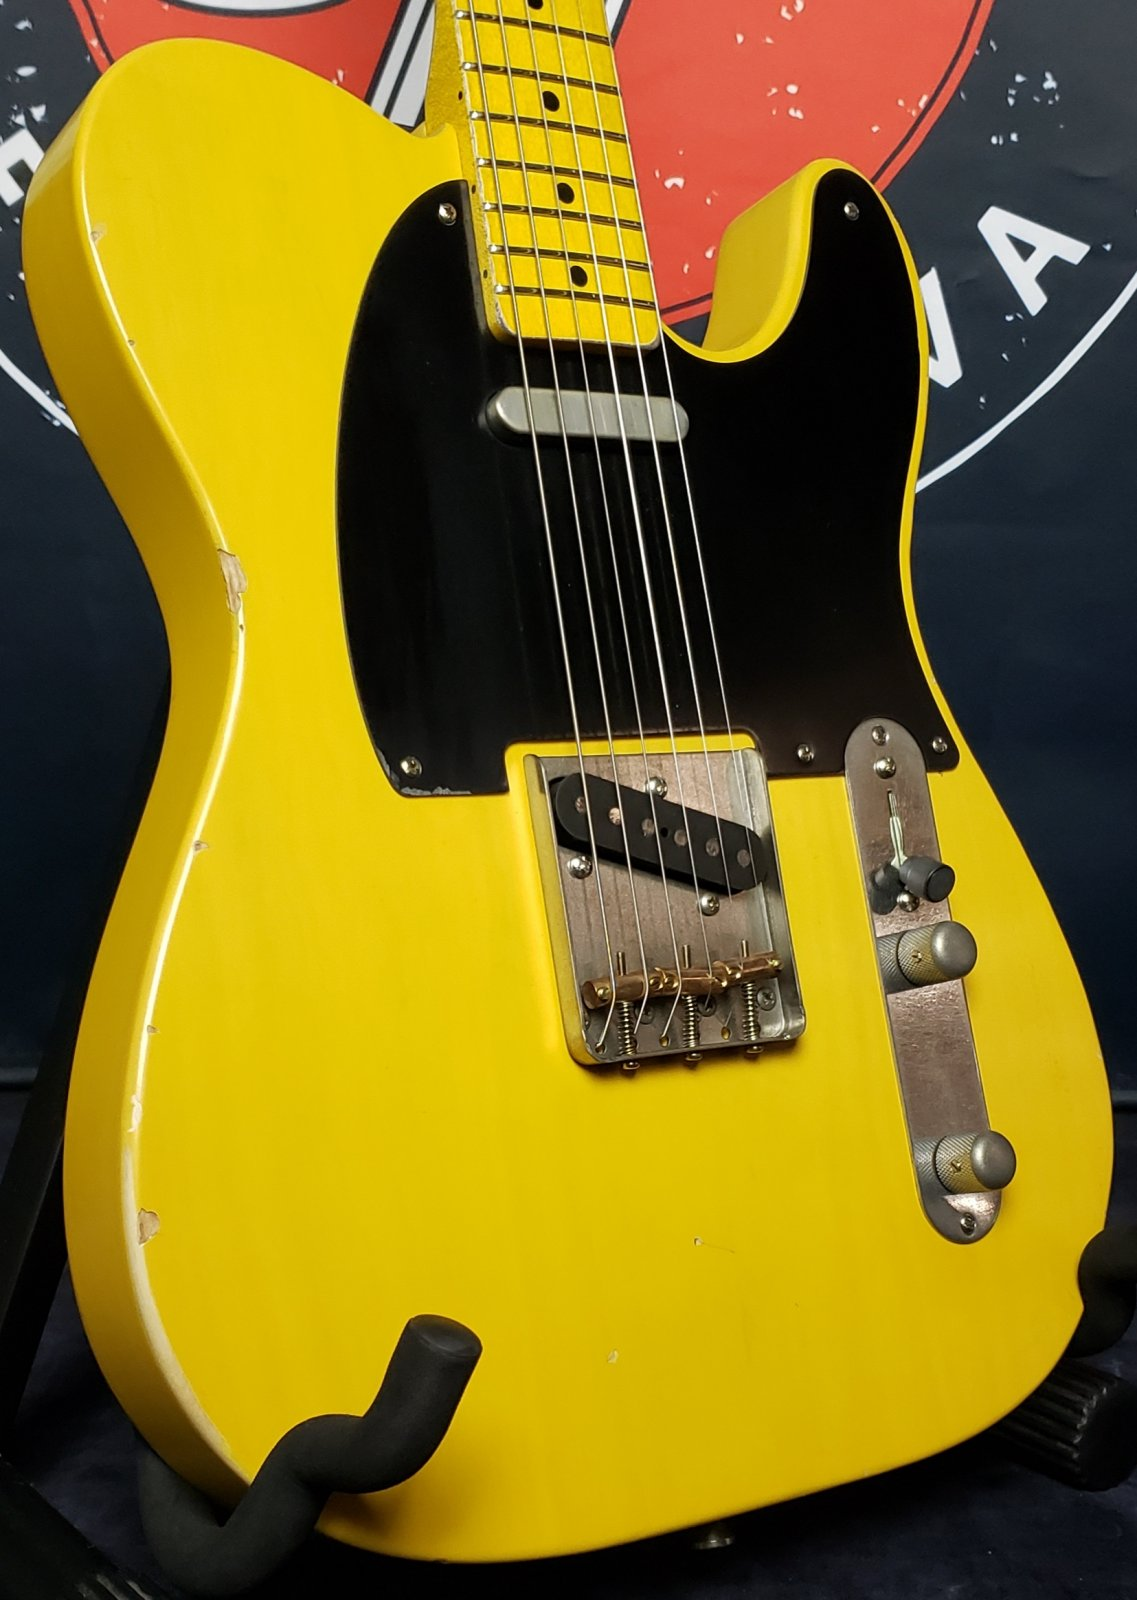 Nash Guitars T-52 Telecaster Butterscotch Blonde V neck